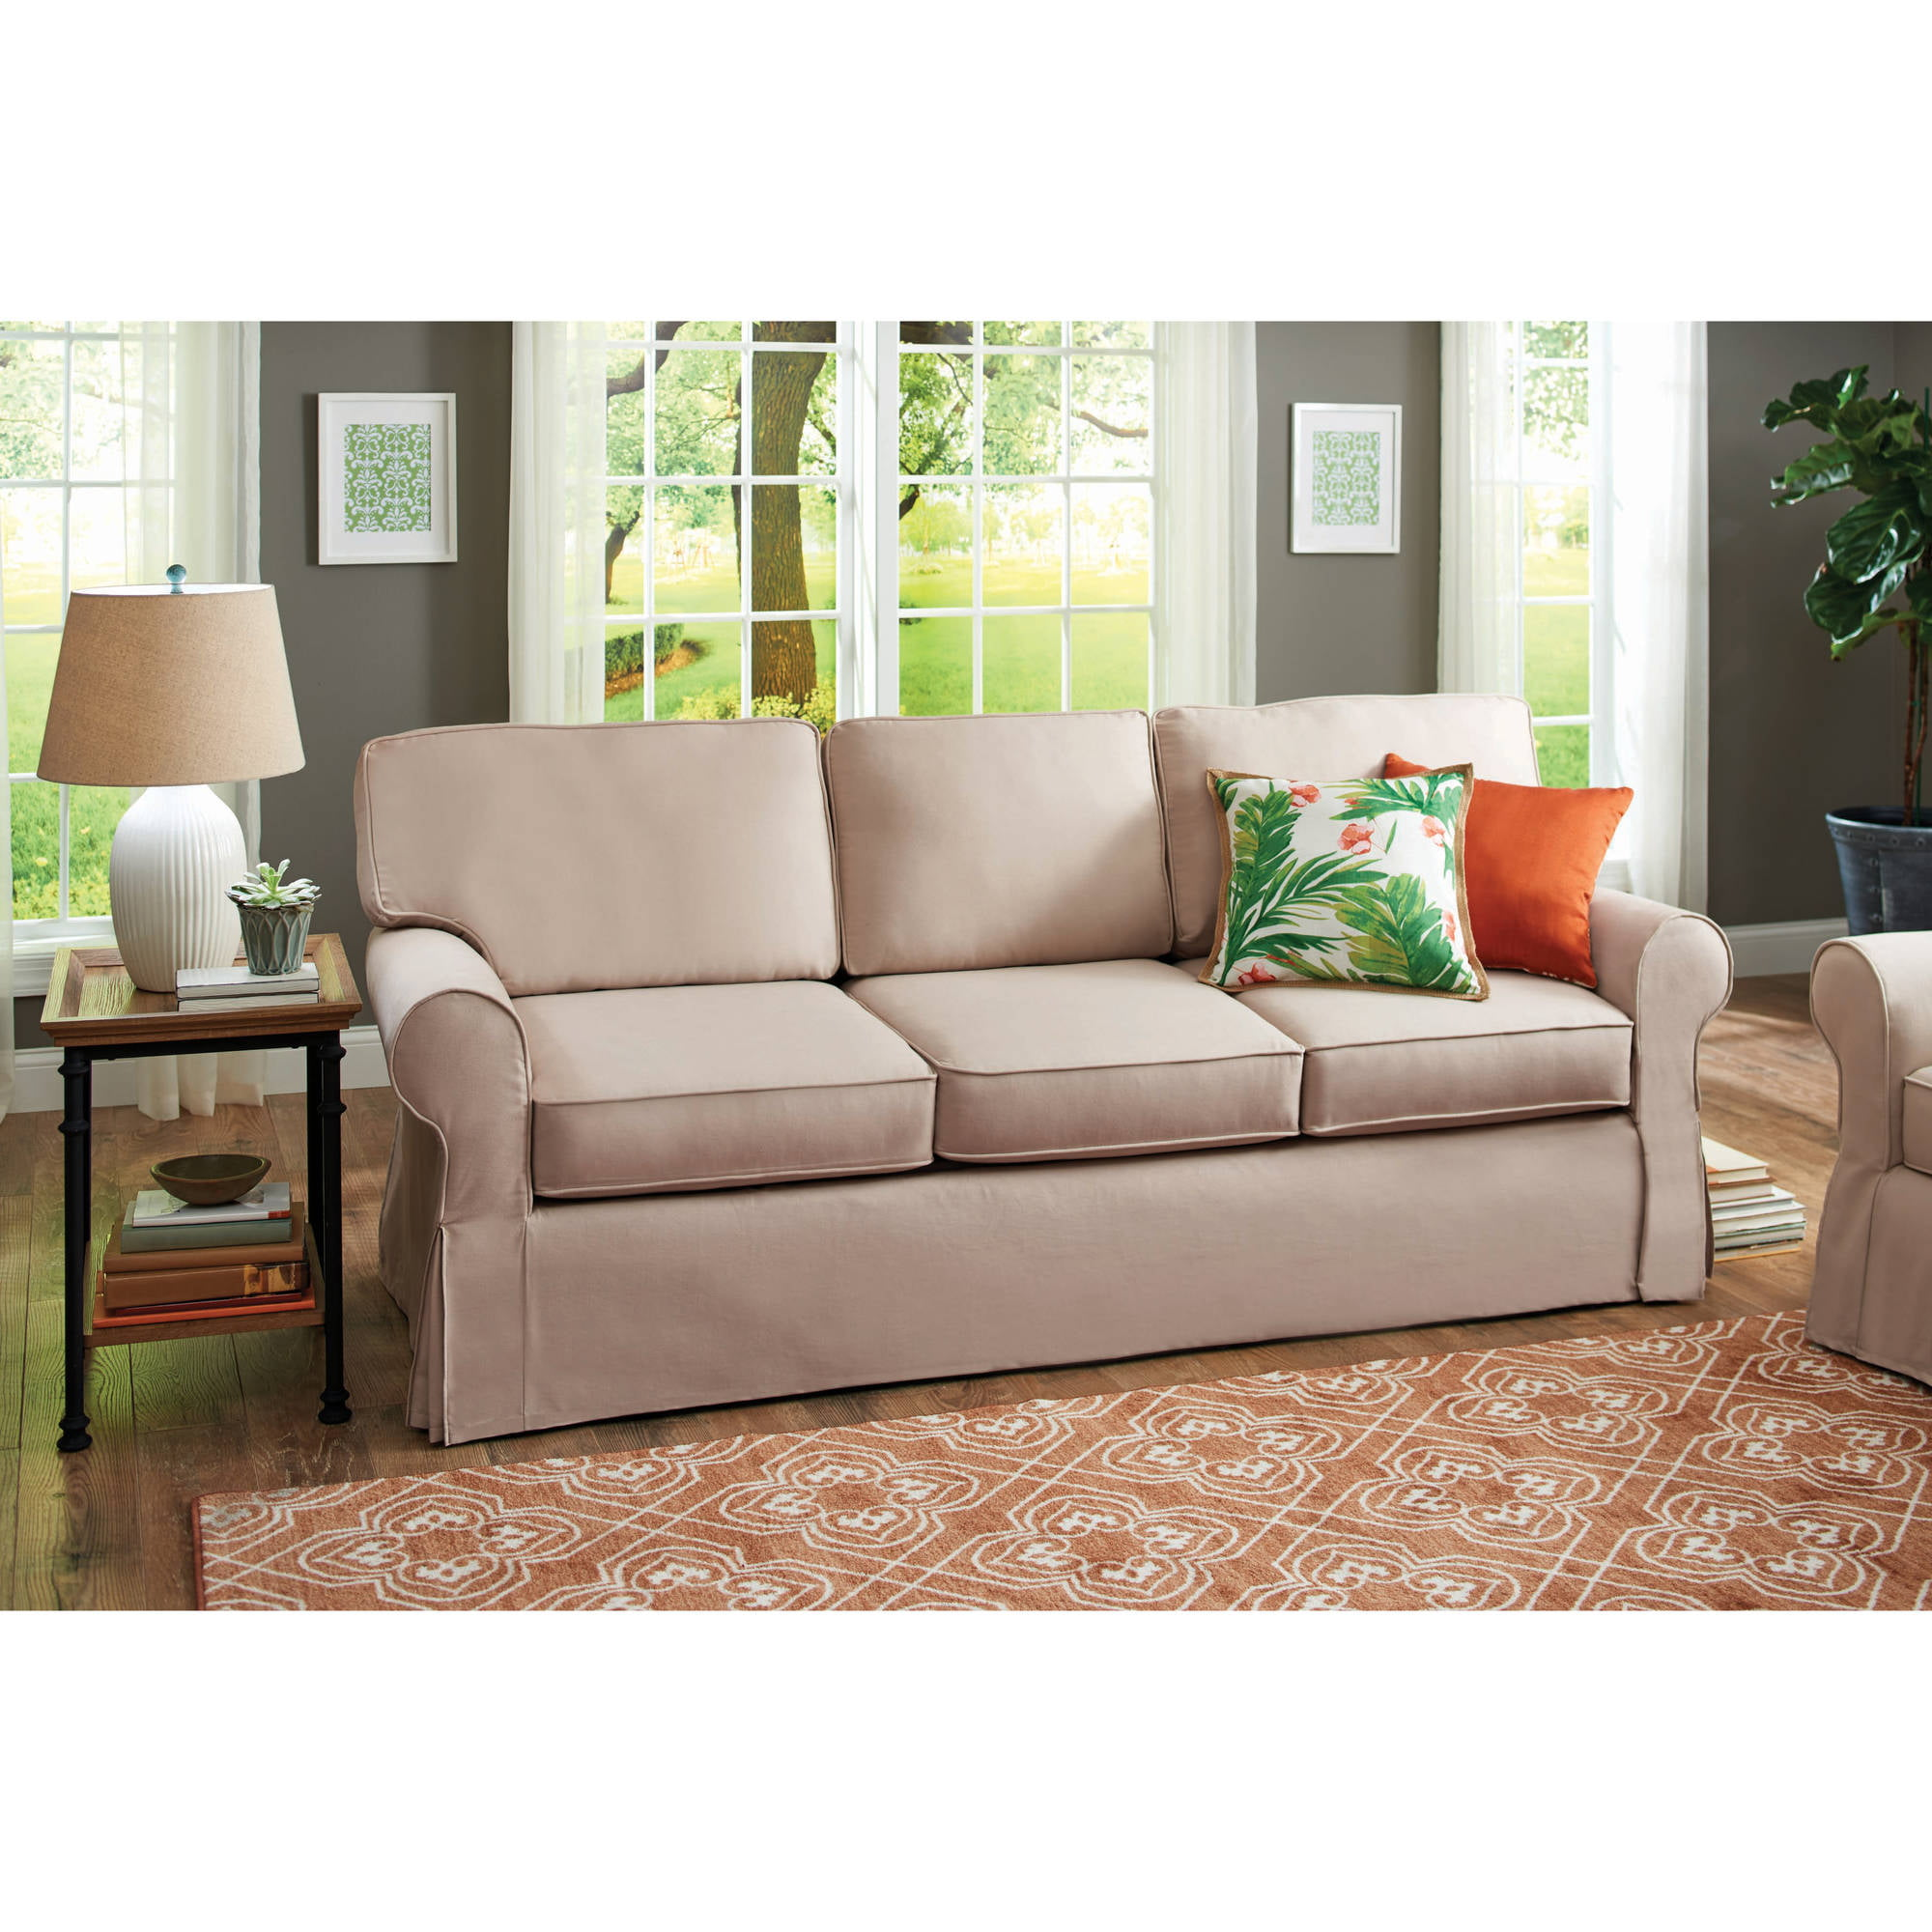 American Furniture Classics Sierra Lodge Sofa Walmart